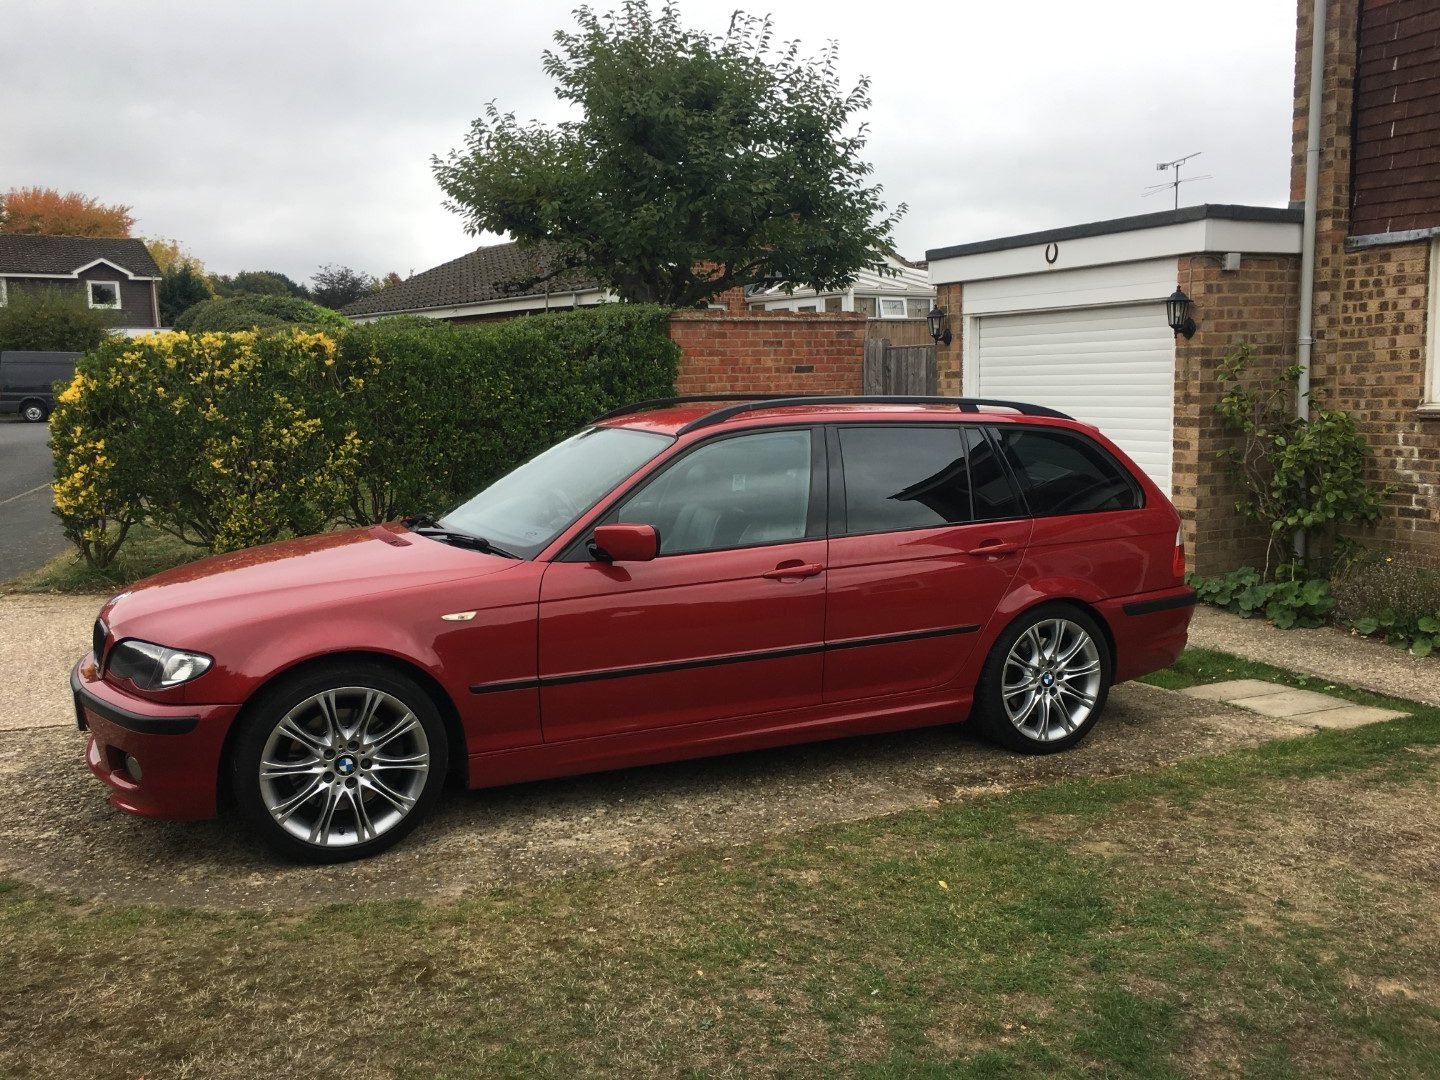 Imola Red 330d with 35% privacy glass